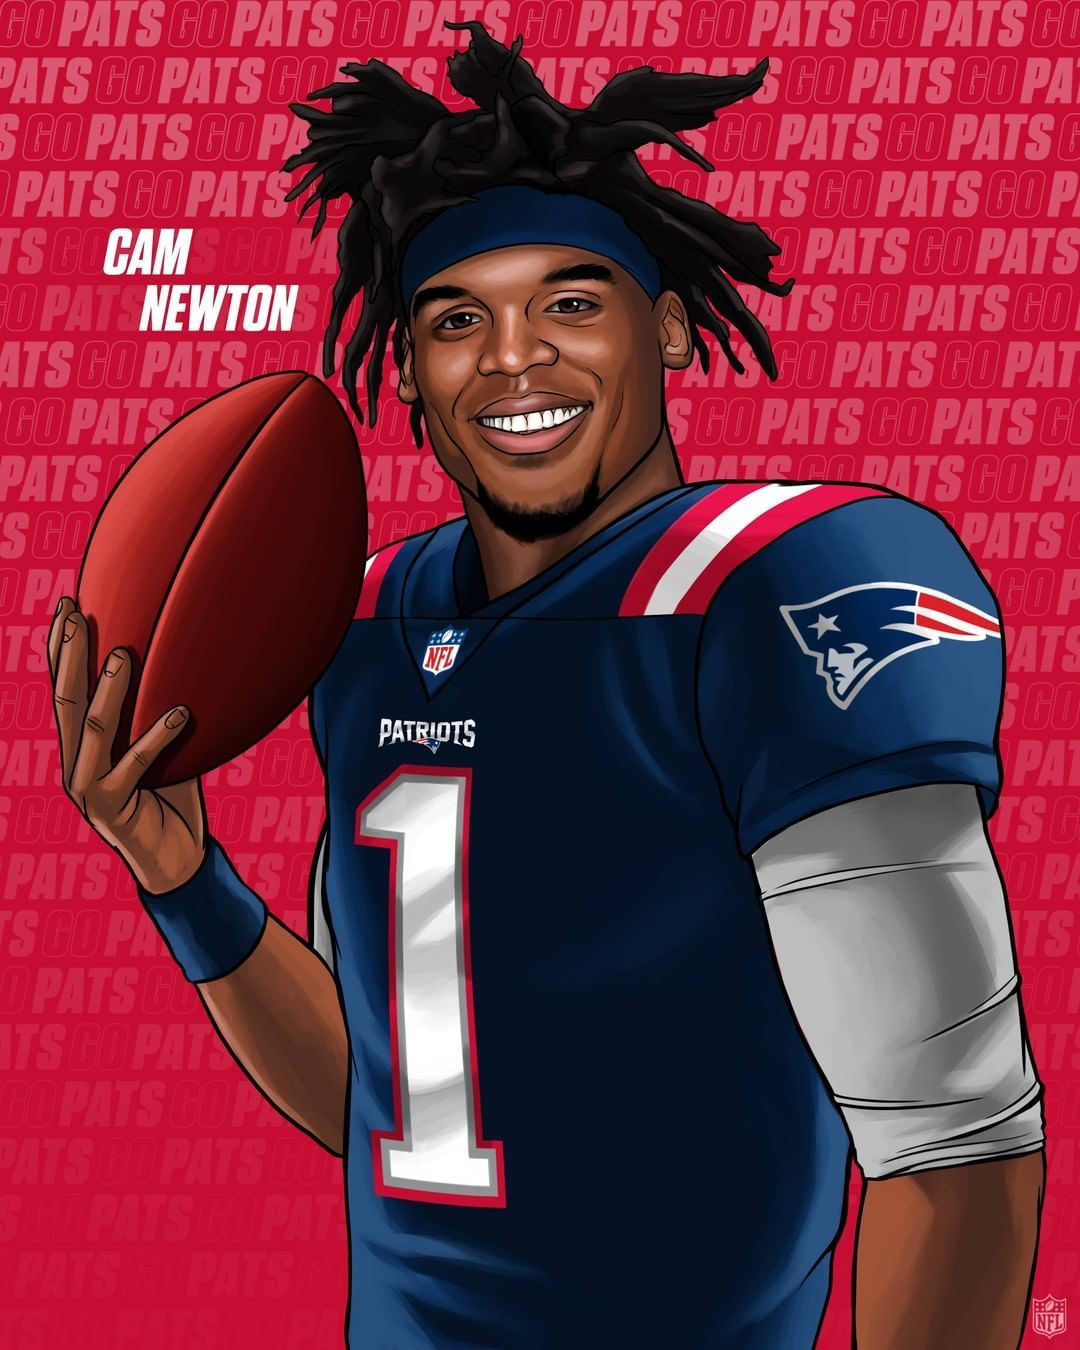 Nfl On Instagram The Patriots New Qb Cameron1newton In 2020 New England Patriots Football Nfl Football Pictures Patriots Football